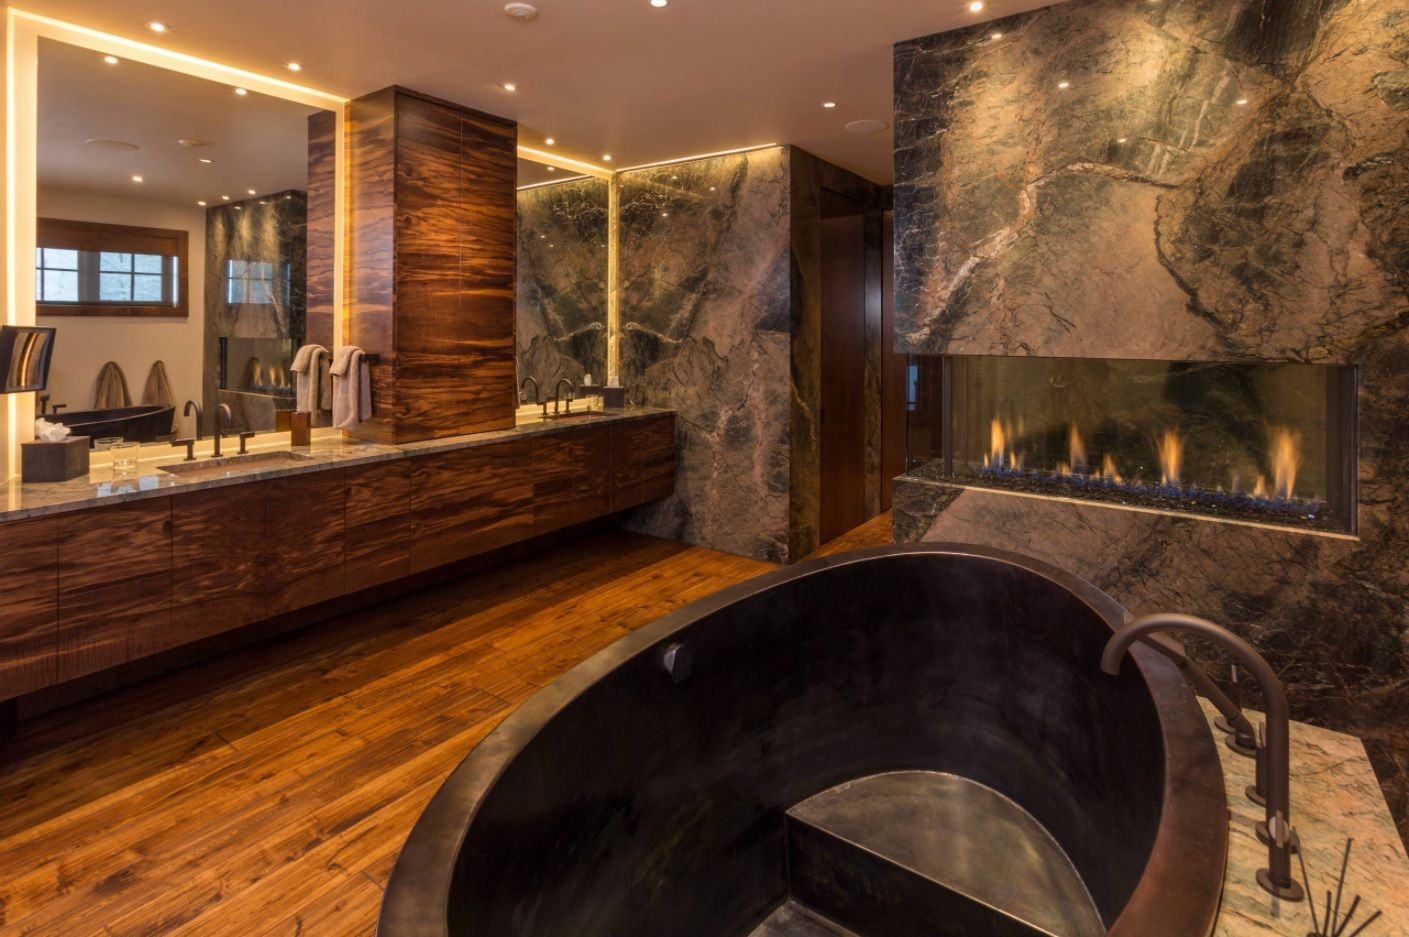 Master Bathroom Design Ideas with Real Interior Photos. Nice dark interior of the ultramodern room trimmed with natural materials